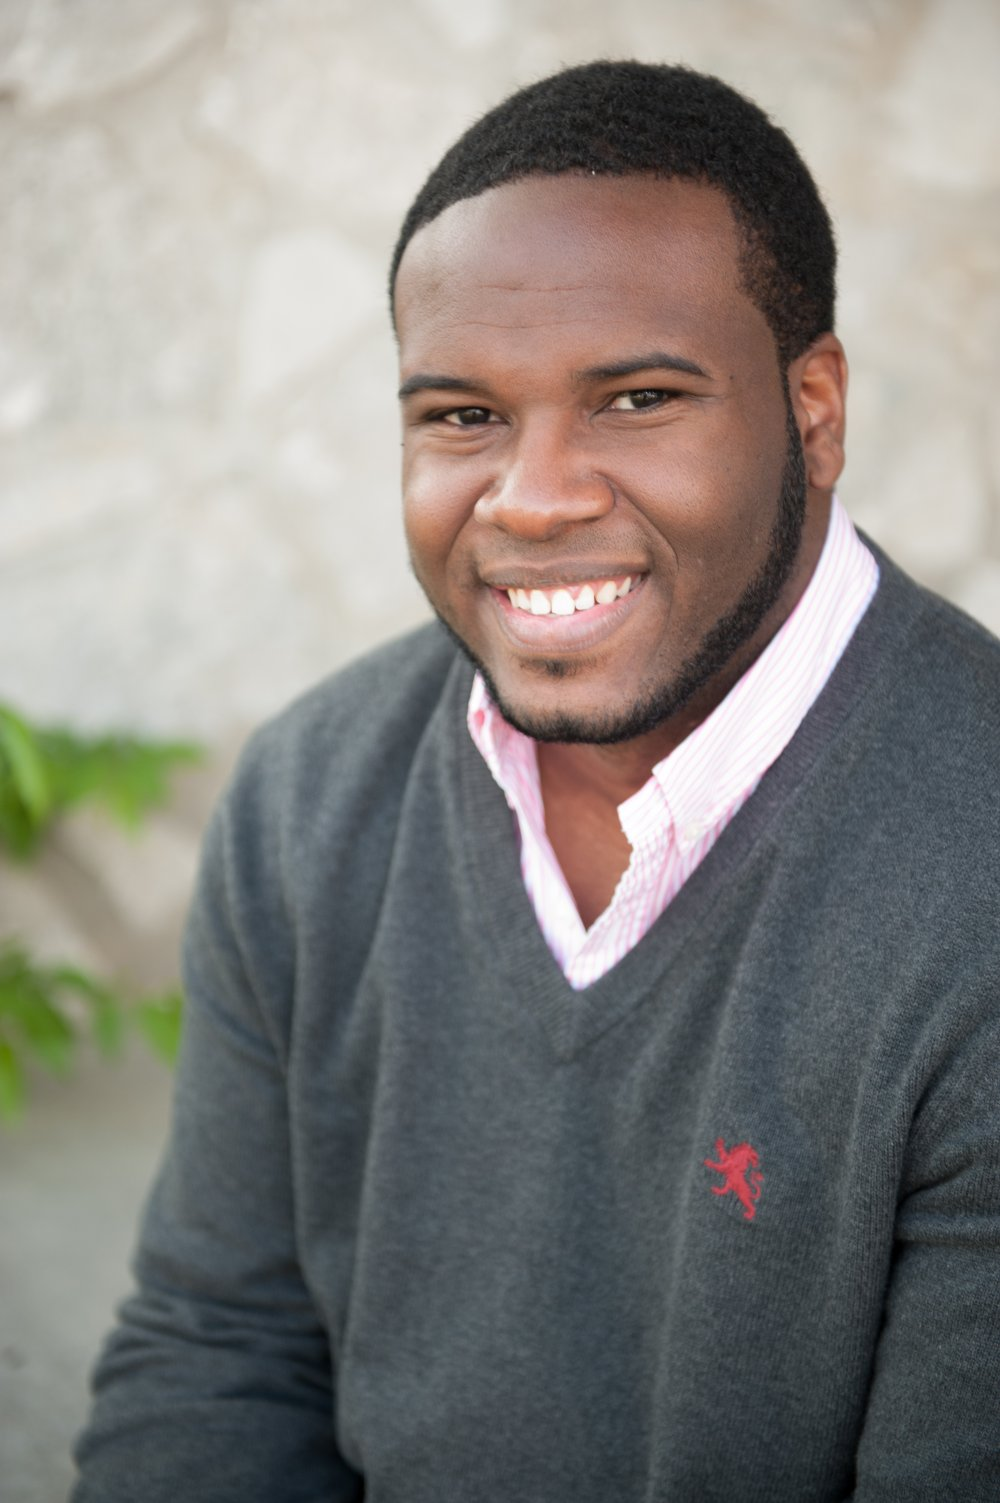 This is a photo of Botham Jean, a Harding Univeristy alumnus.